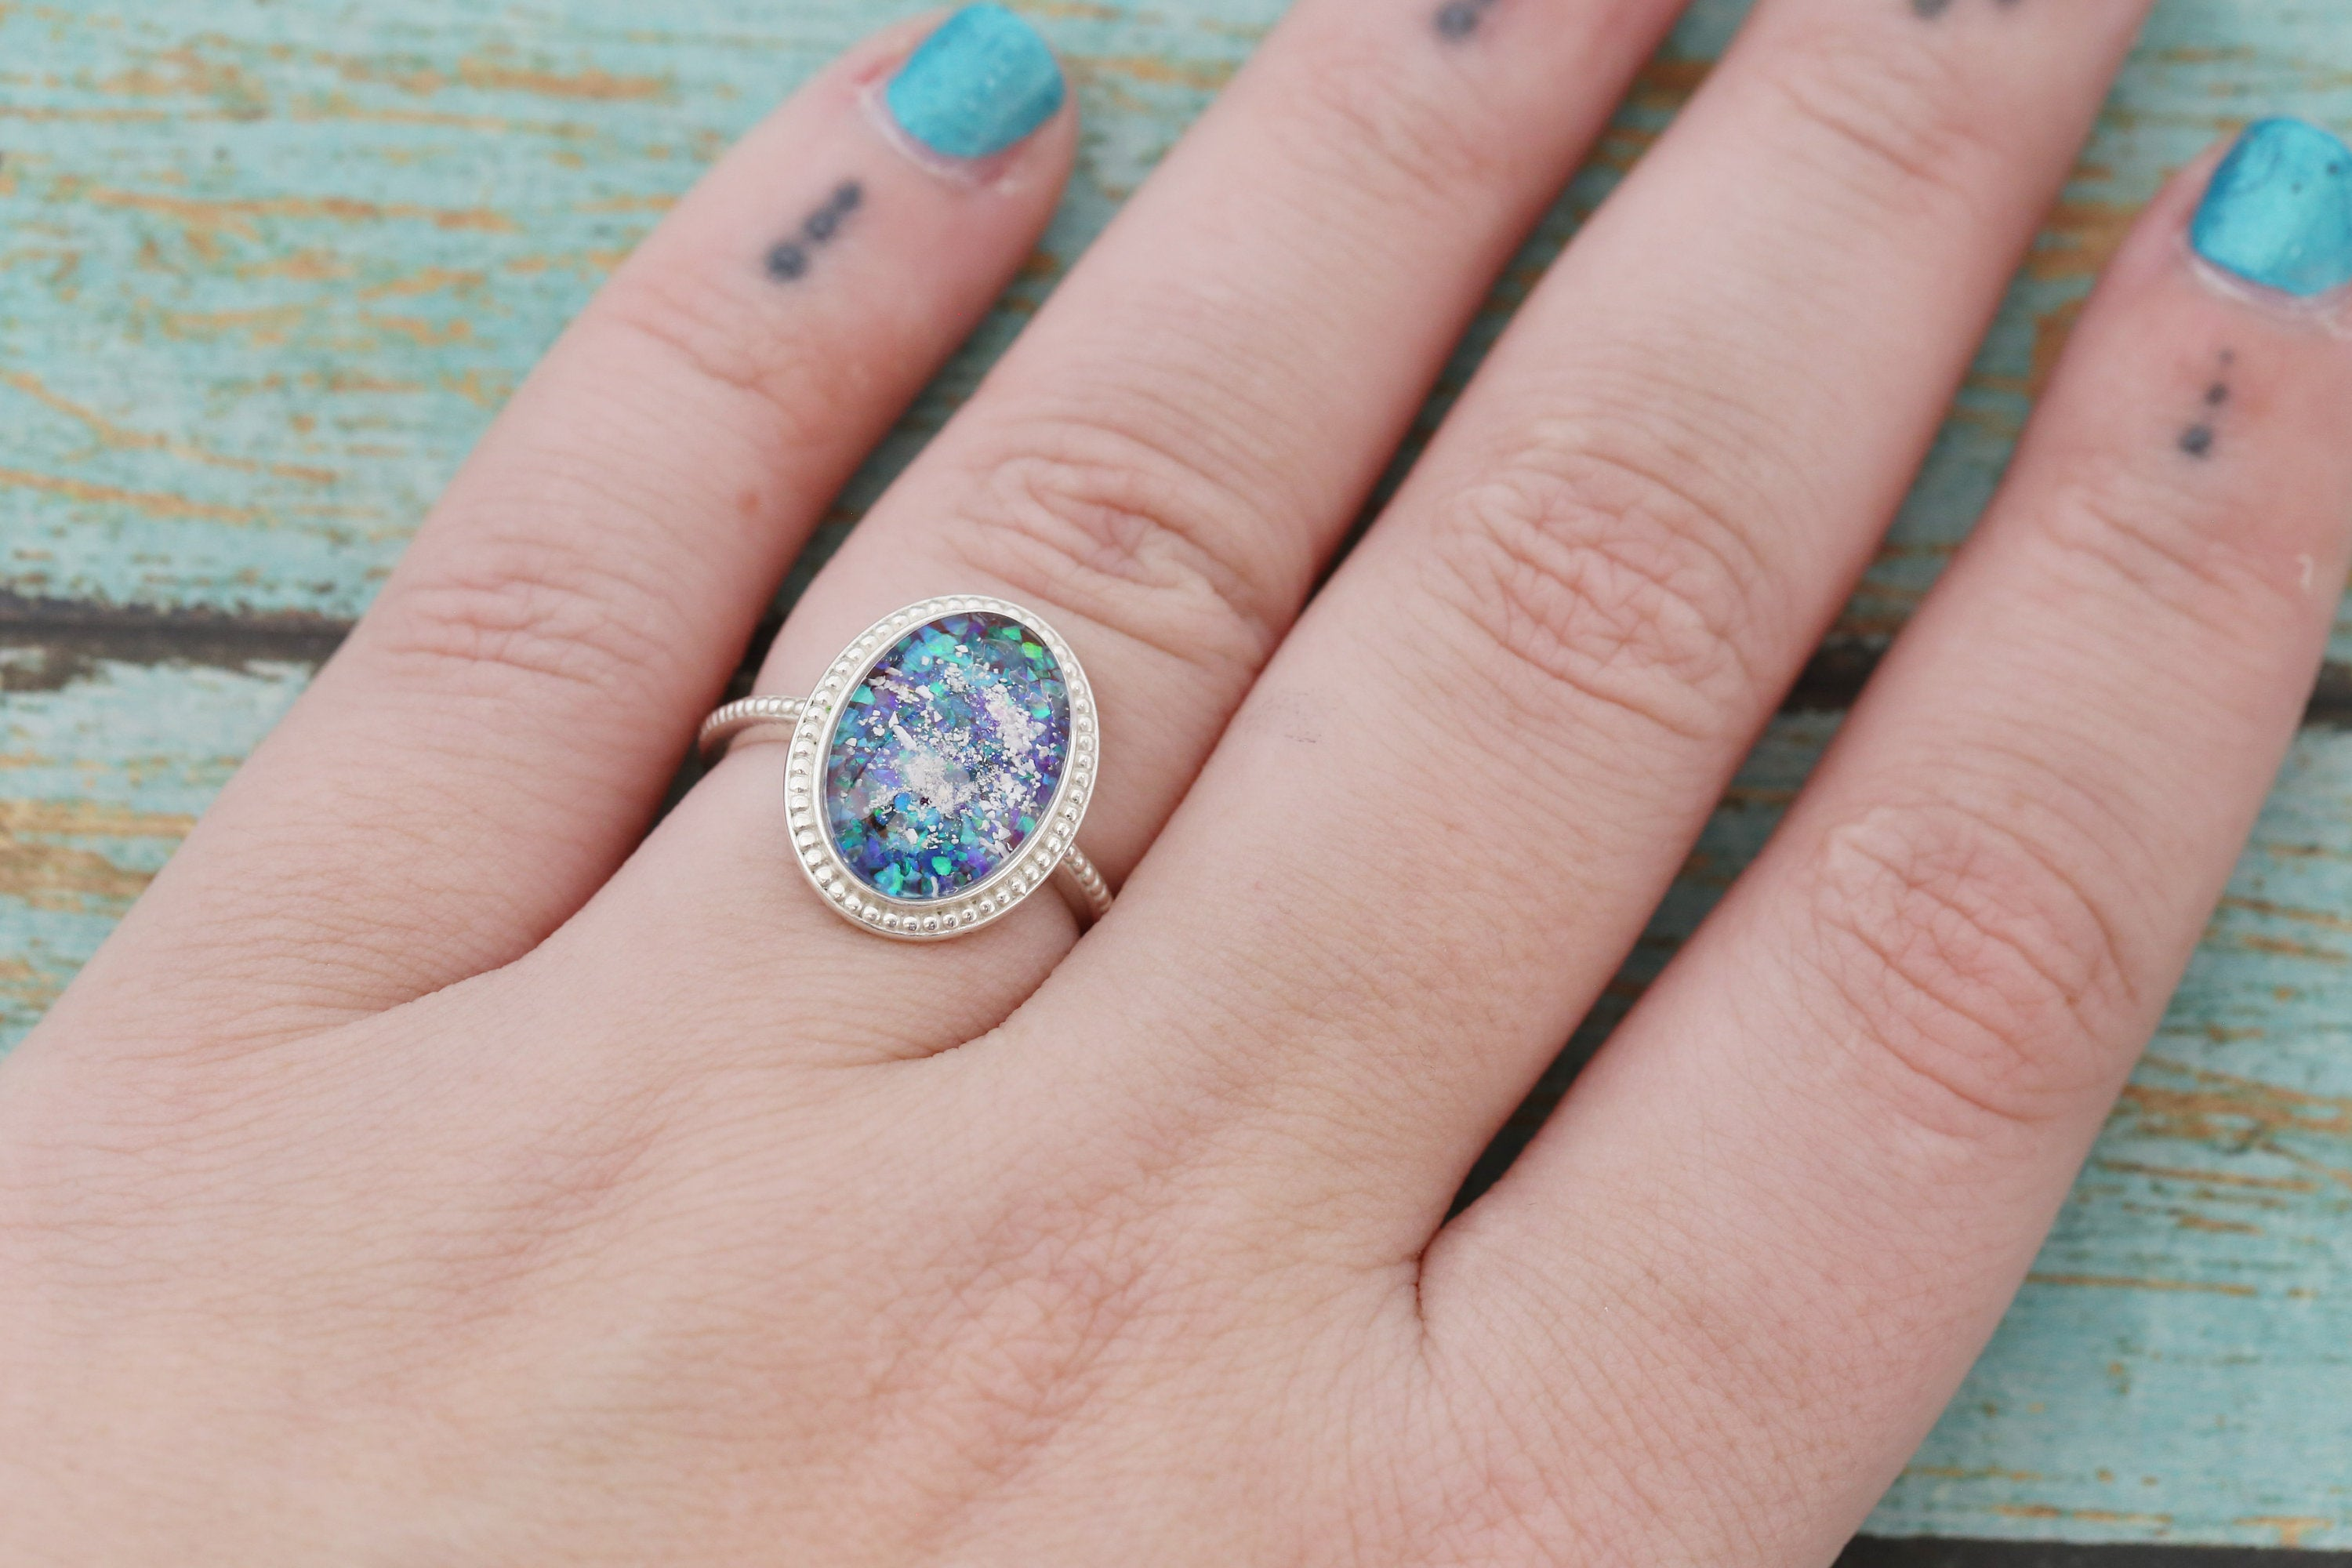 10x14mm Oval Opal Cremation Ring - Sterling Silver Beaded Ring - Cremation Jewelry - Ash Ring - Ash Jewelry - Urn Ring - Urn - Pet Loss